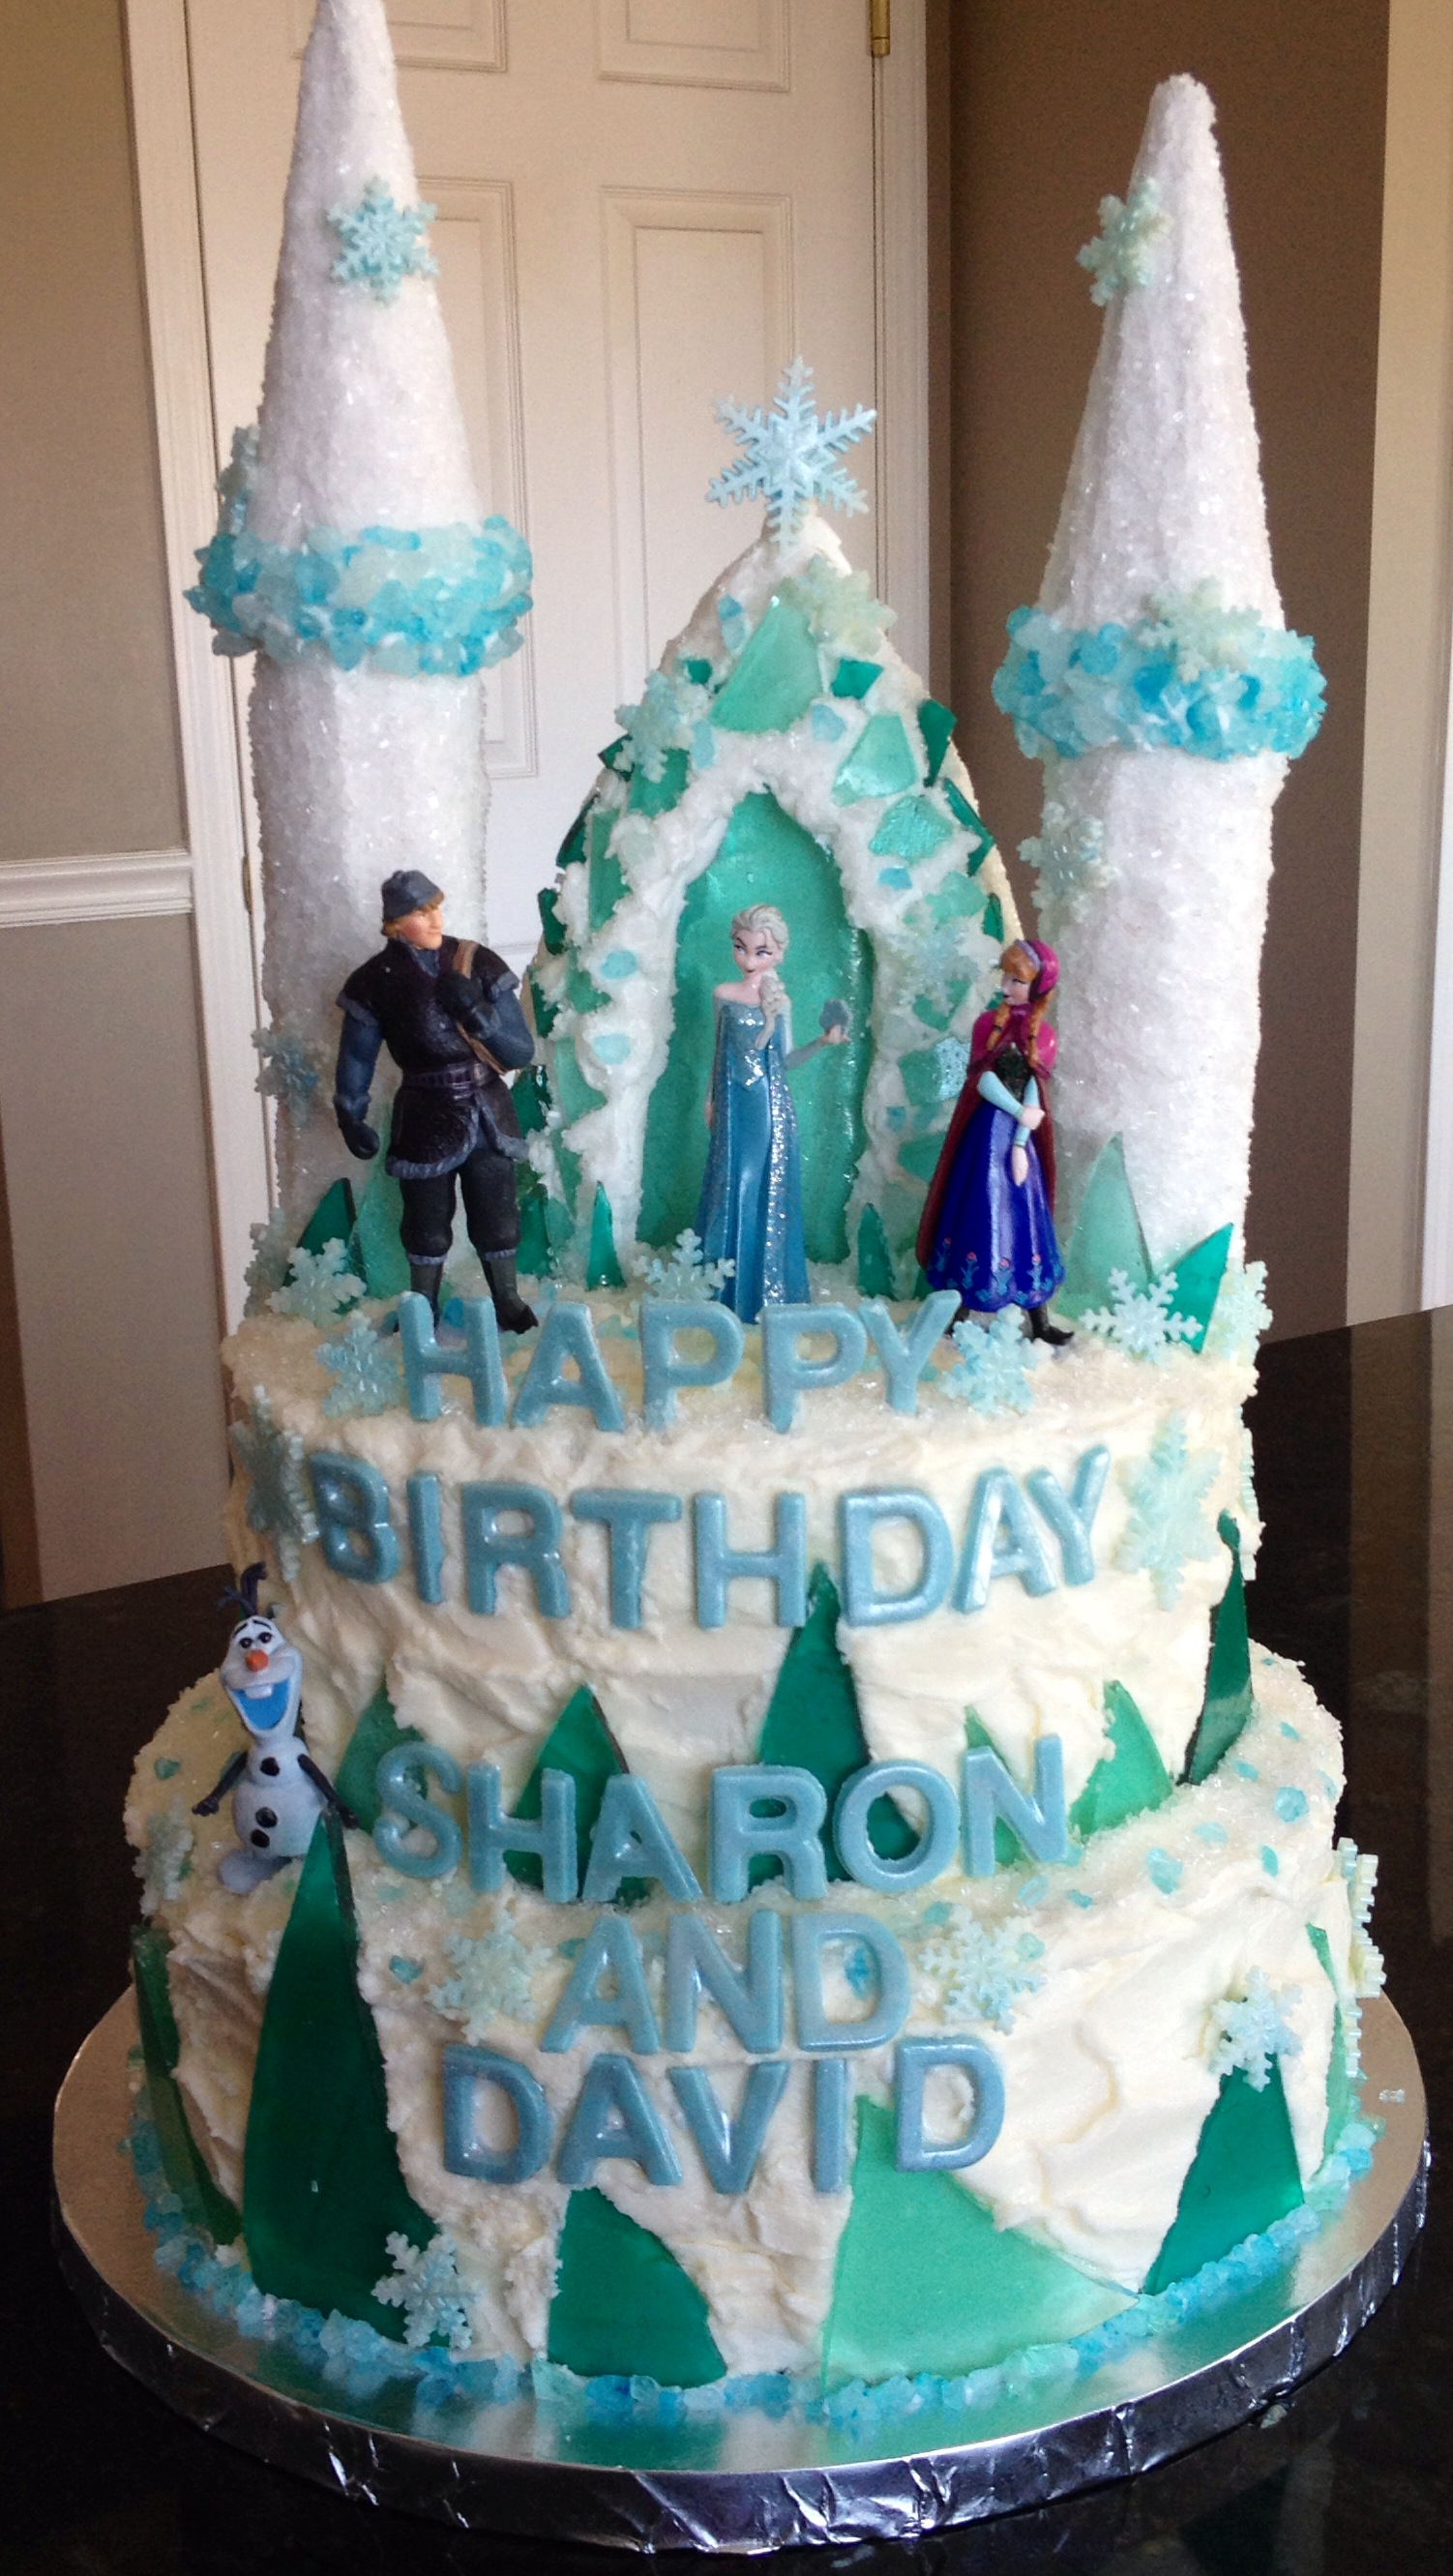 6 Princess Elsa Ice Queen Cakes Decorations Photo Frozen Disney